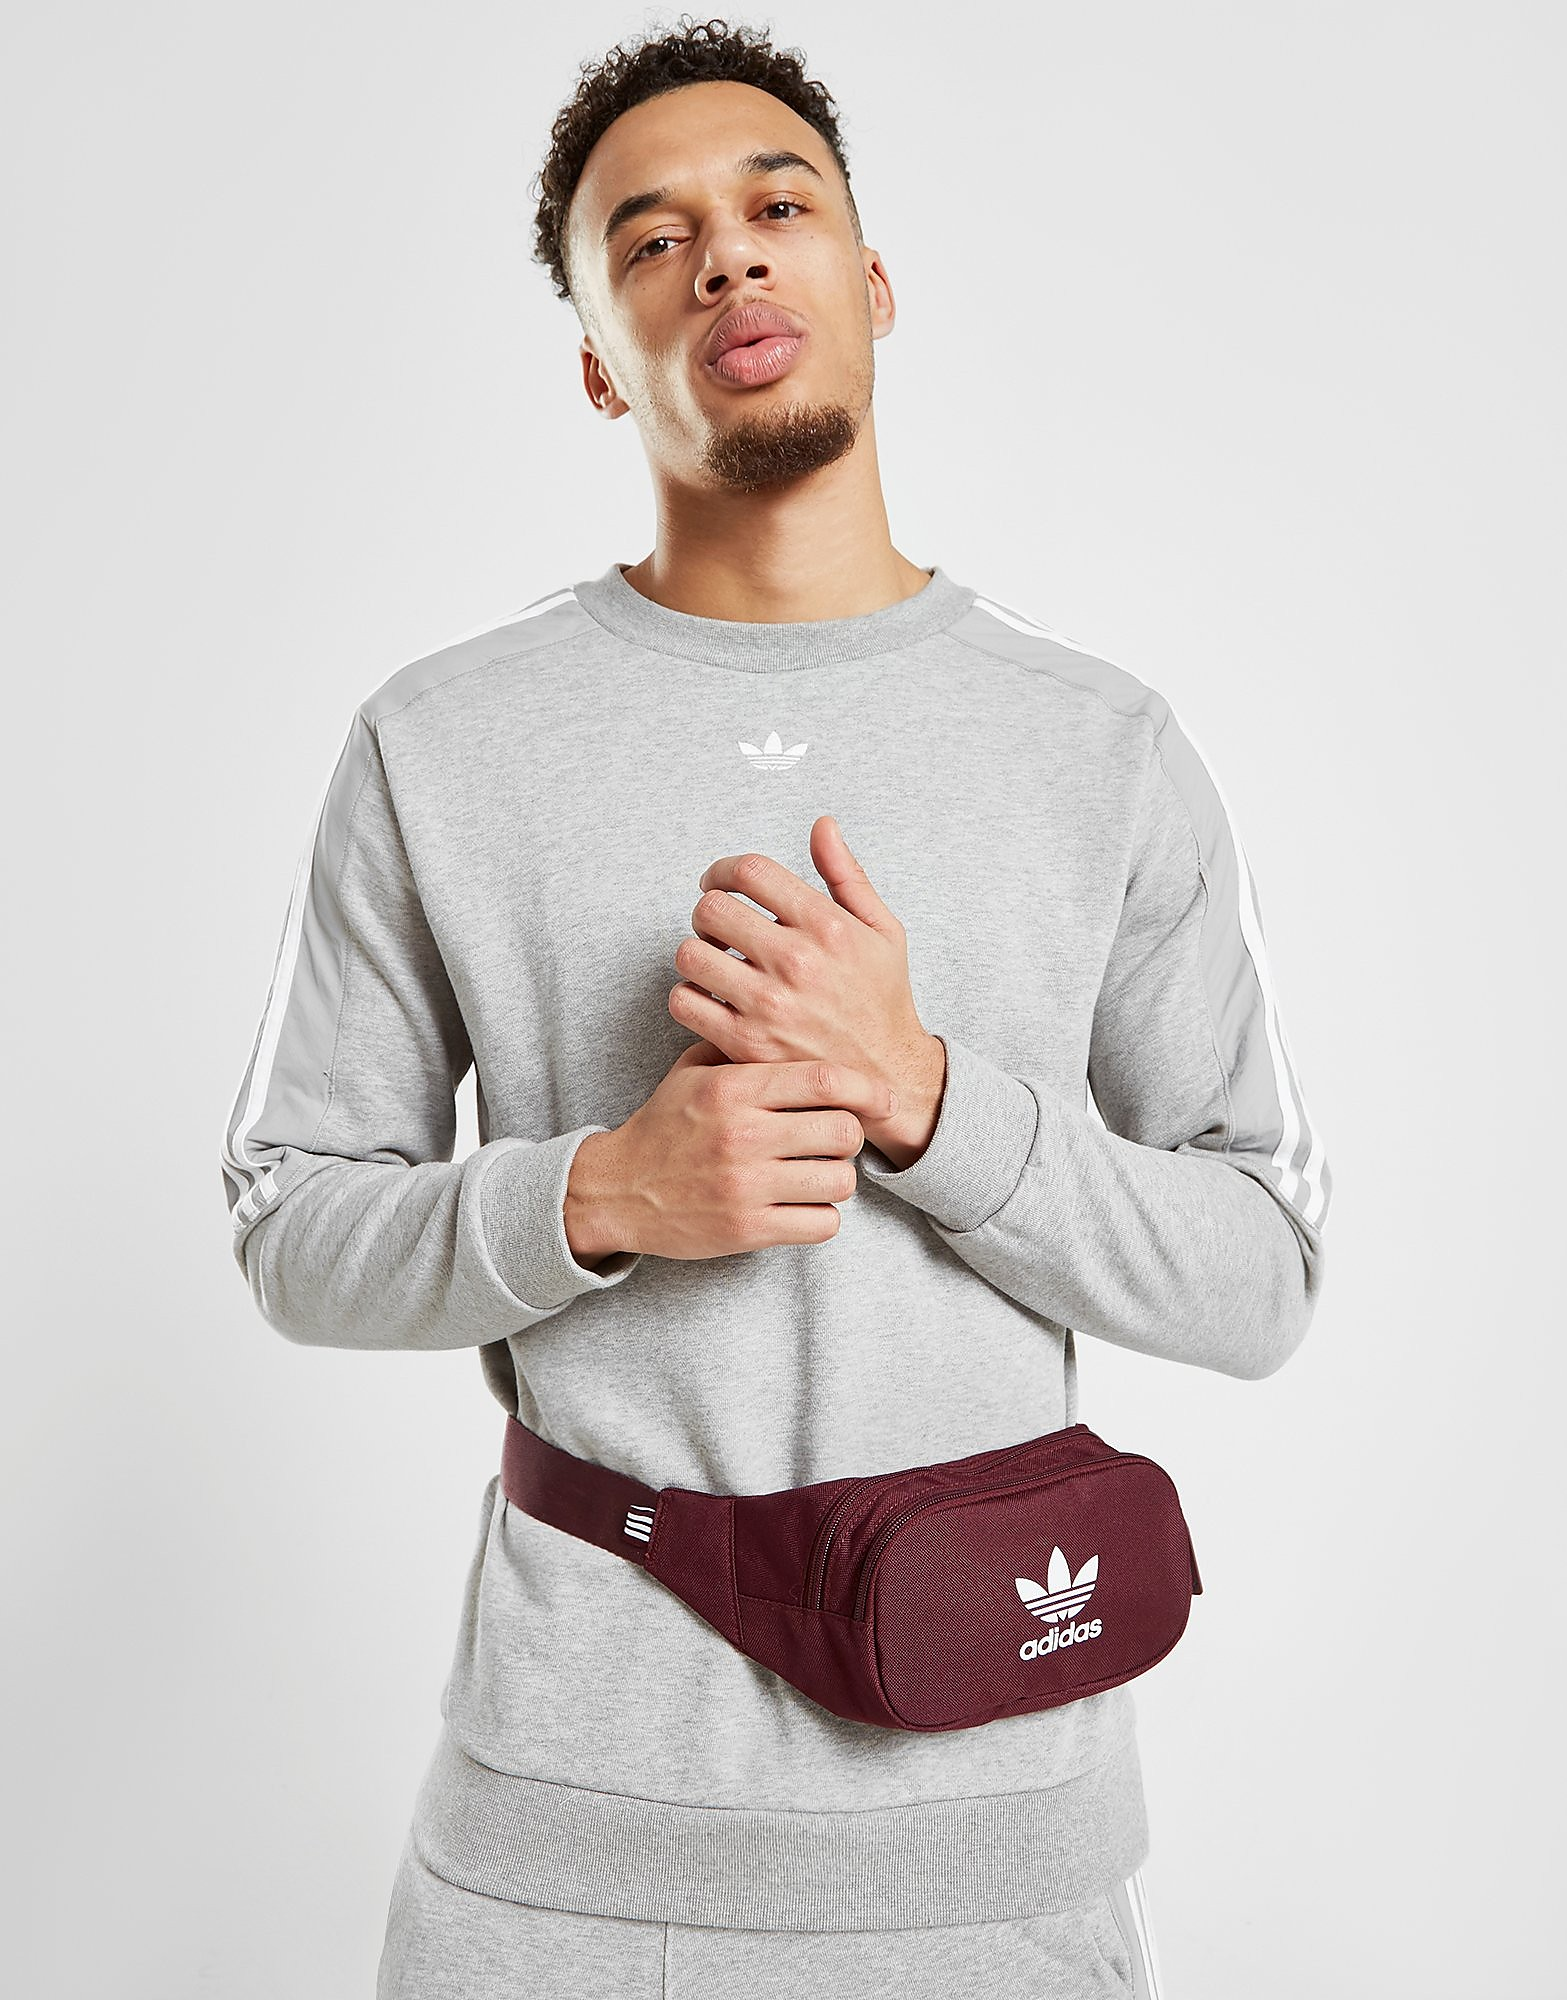 adidas Originals Trefoil Waist Bag